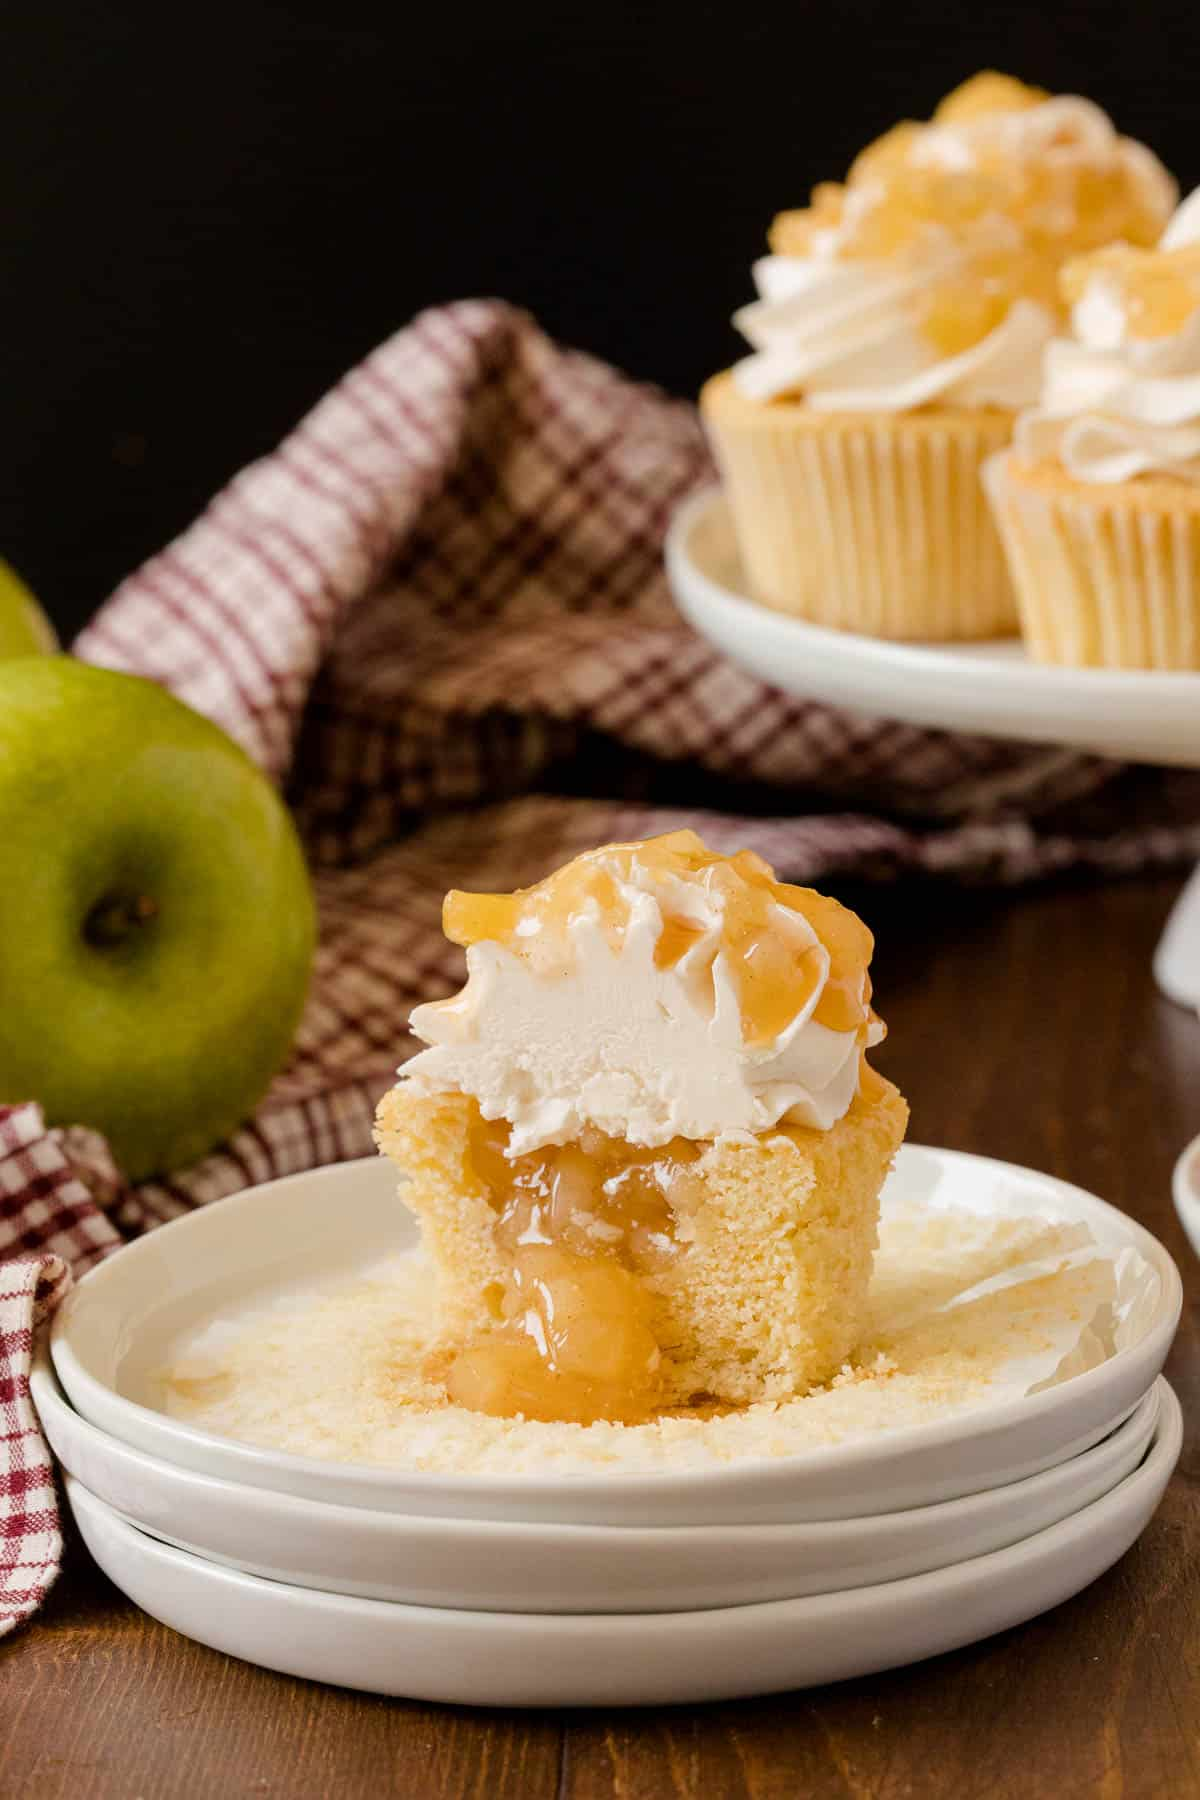 Caramel Apple Cupcakes - Fall in a cupcake! Sweet caramel and apple pie are packed into this delicious handheld dessert.